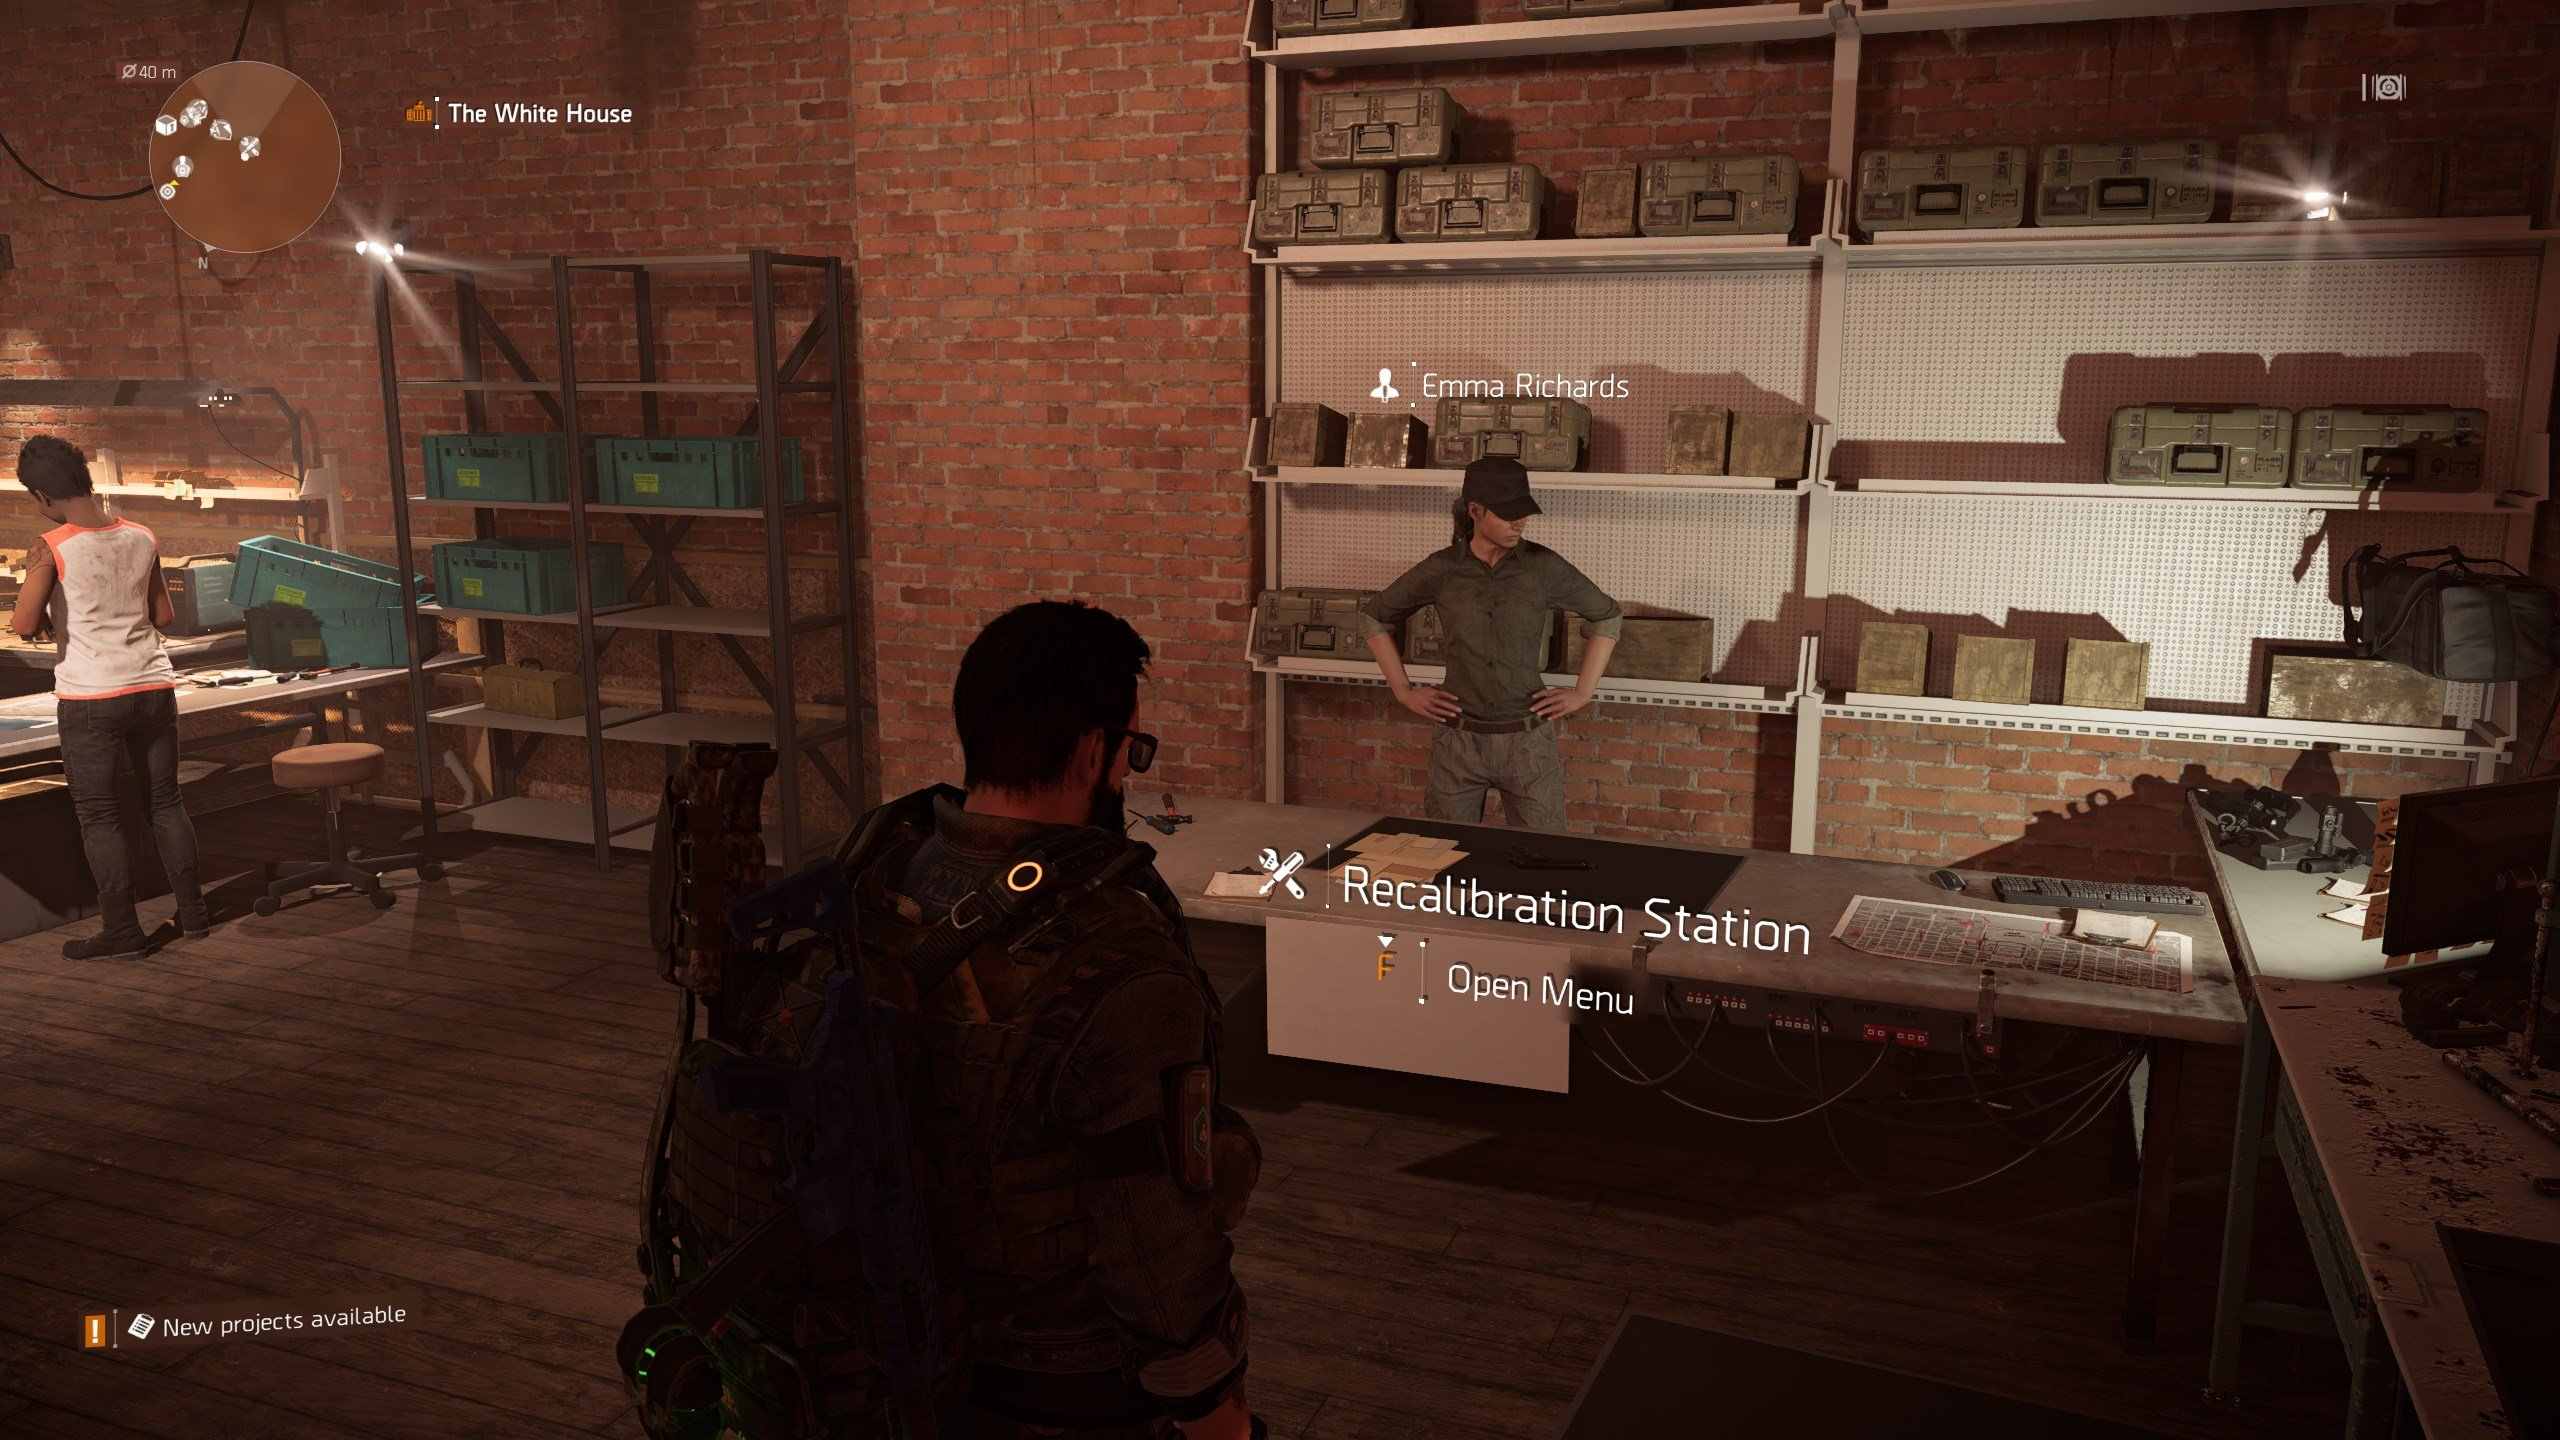 How to use the Recalibration Station in The Division 2 - Recalibration Station location